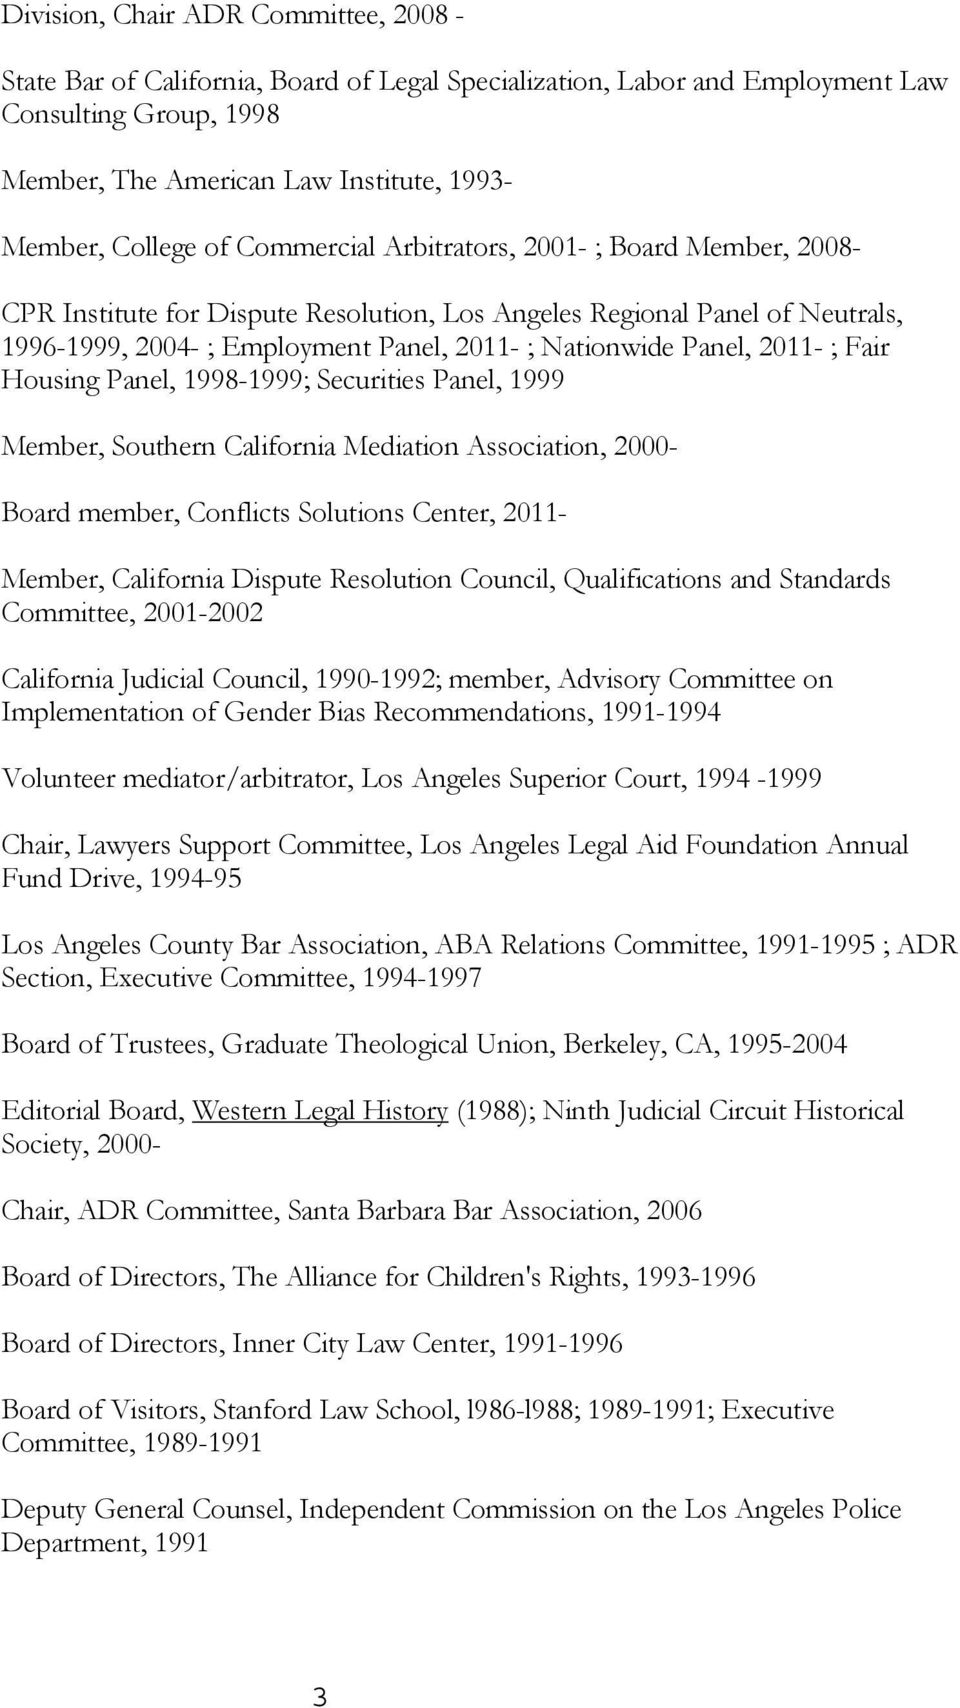 2011- ; Fair Housing Panel, 1998-1999; Securities Panel, 1999 Member, Southern California Mediation Association, 2000- Board member, Conflicts Solutions Center, 2011- Member, California Dispute